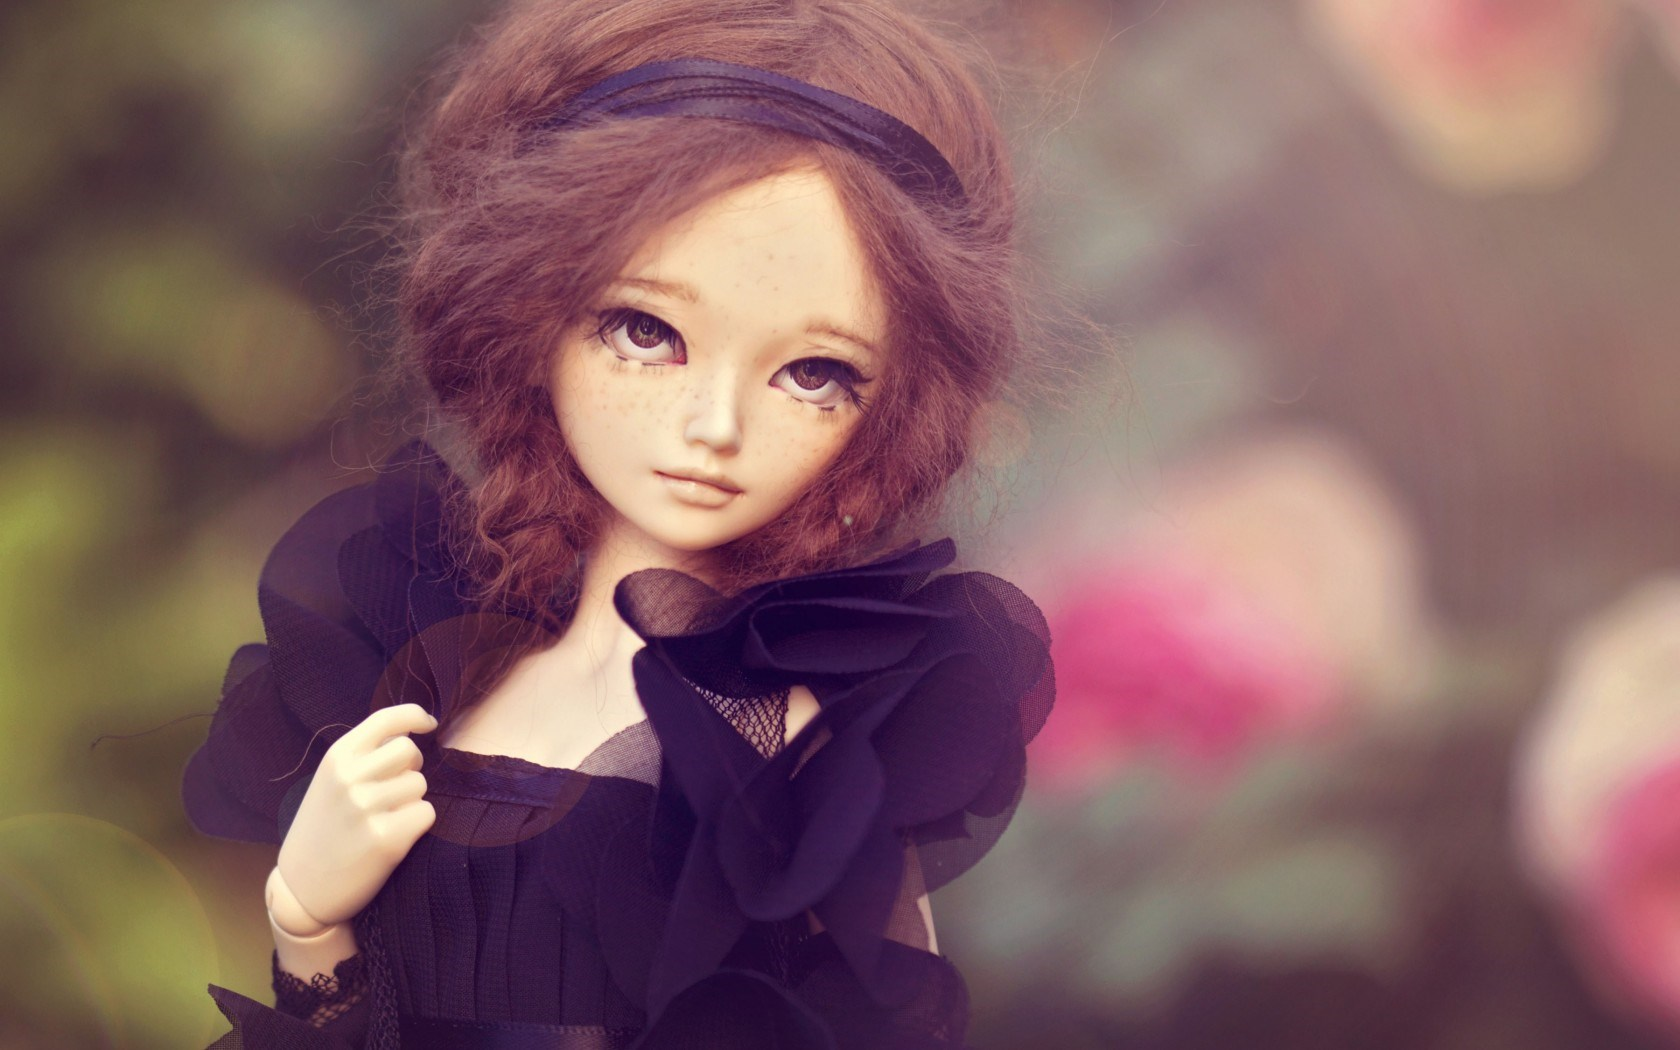 Beautiful Doll Wallpaper High Definition High Quality Widescreen